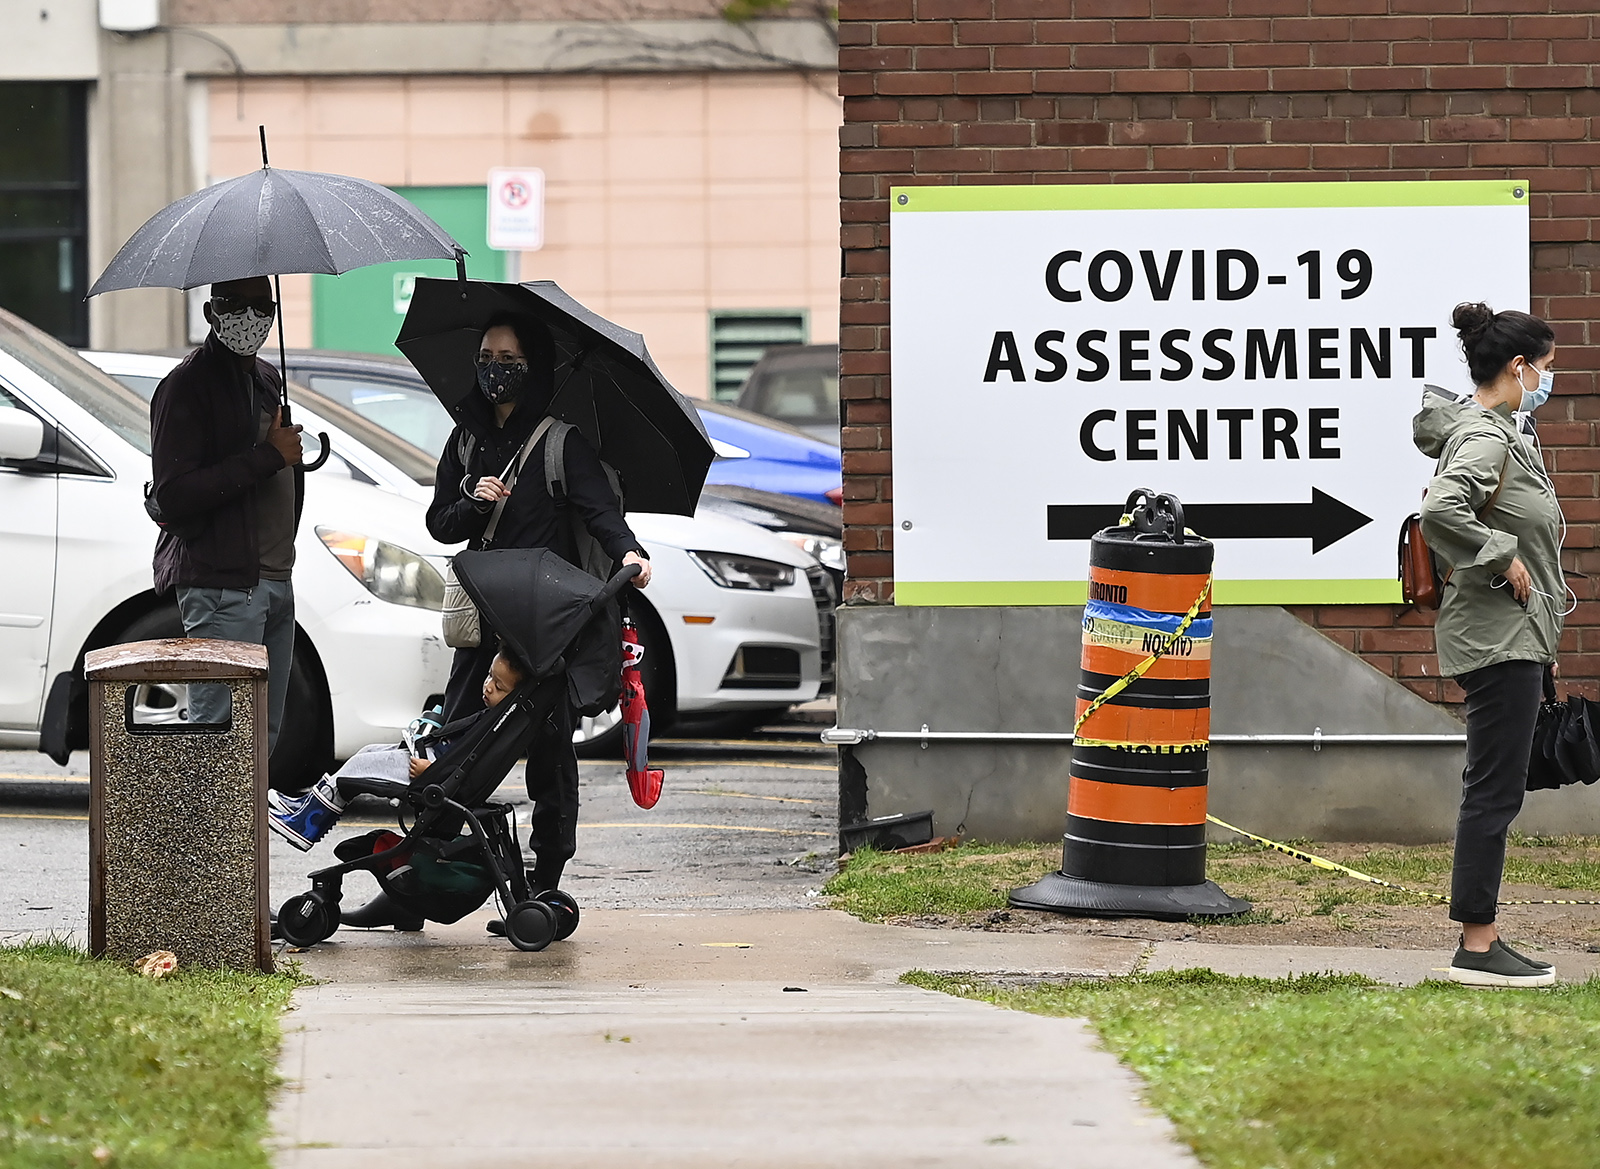 People line up to be tested for Covid-19 at a testing center in Toronto on Sunday, September 13.